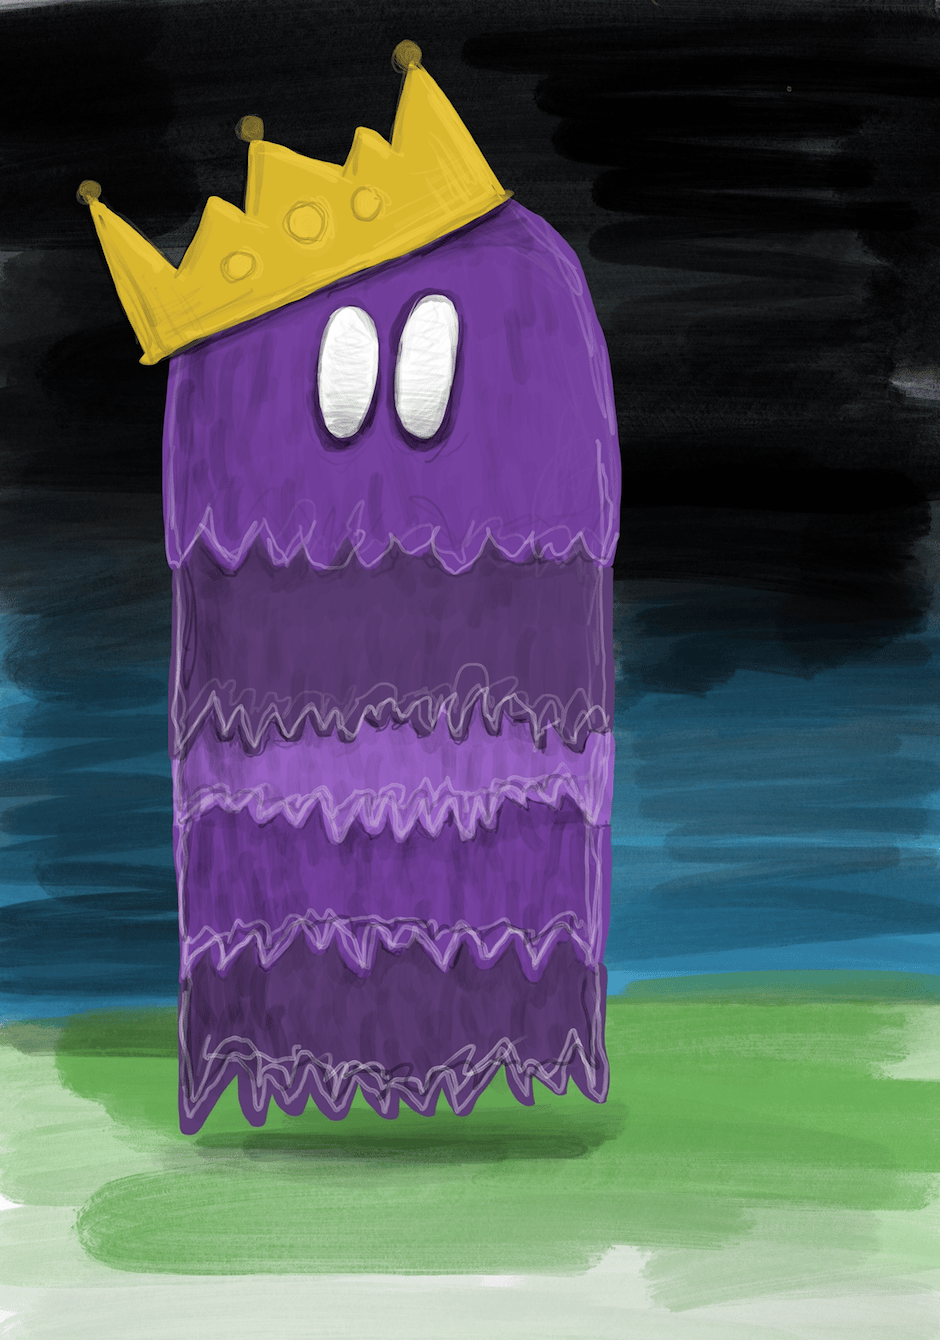 Ghost monster - image 1 - student project